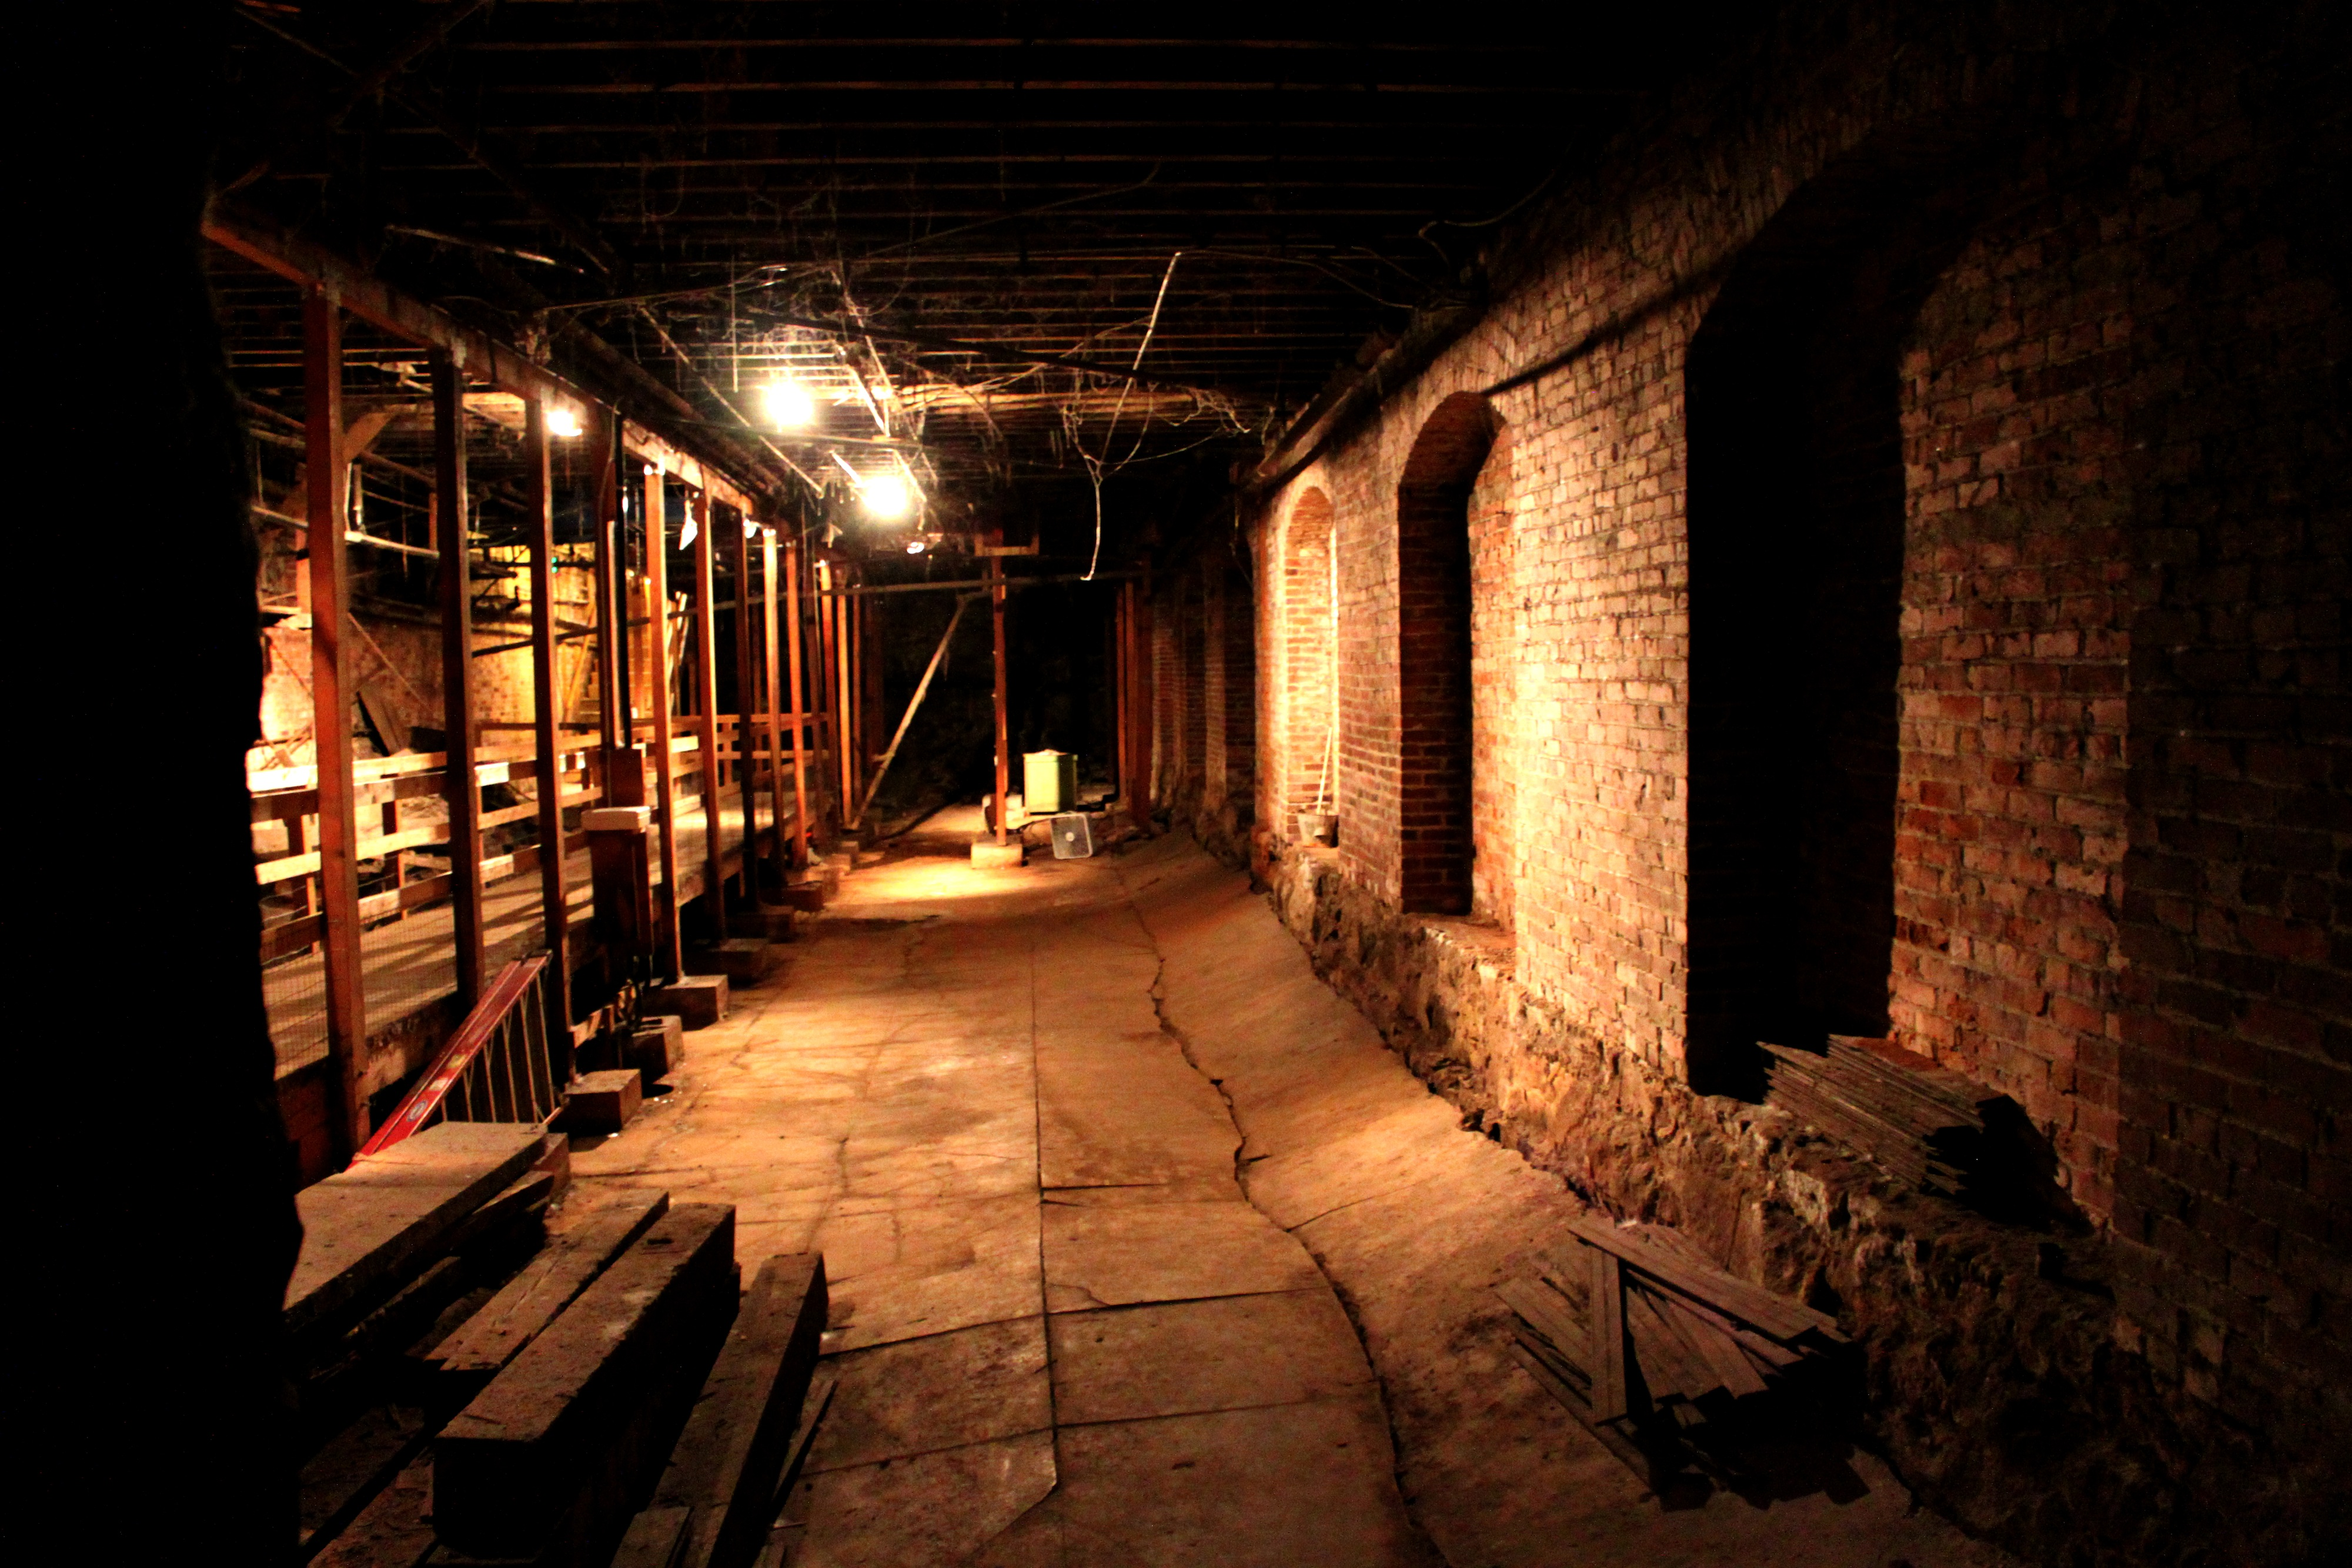 Seattle_Underground1.jpg